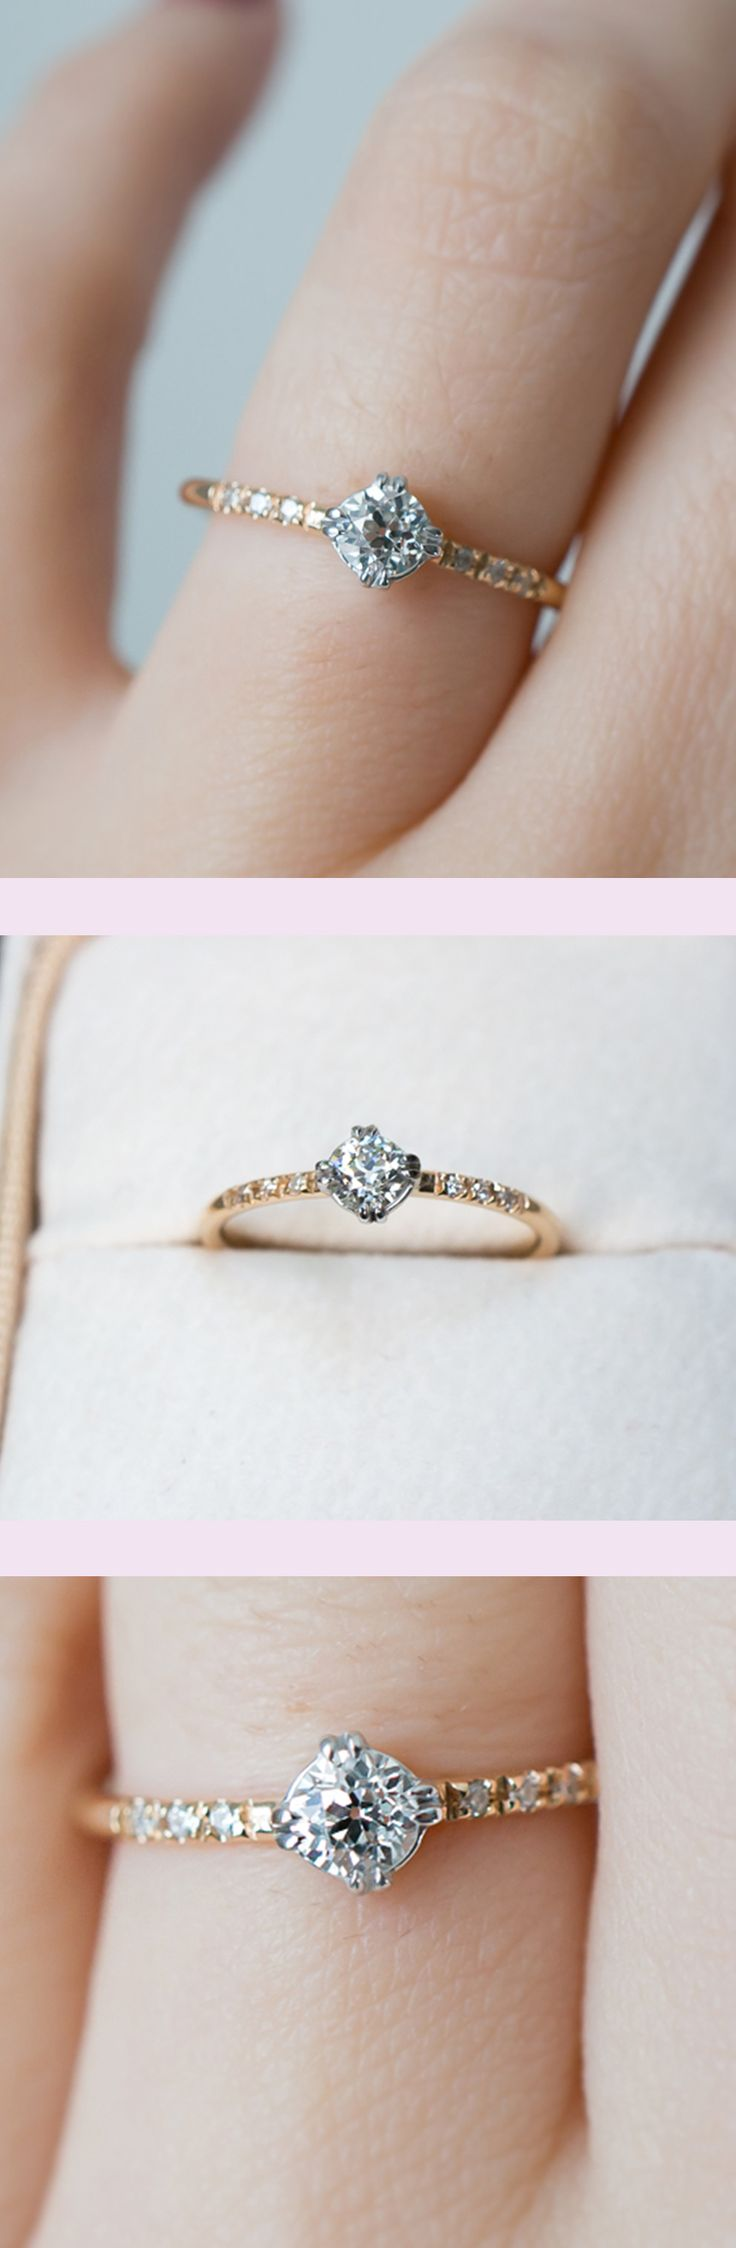 the sweetest vintage diamond engagement ring by s kind - Wedding Ringscom